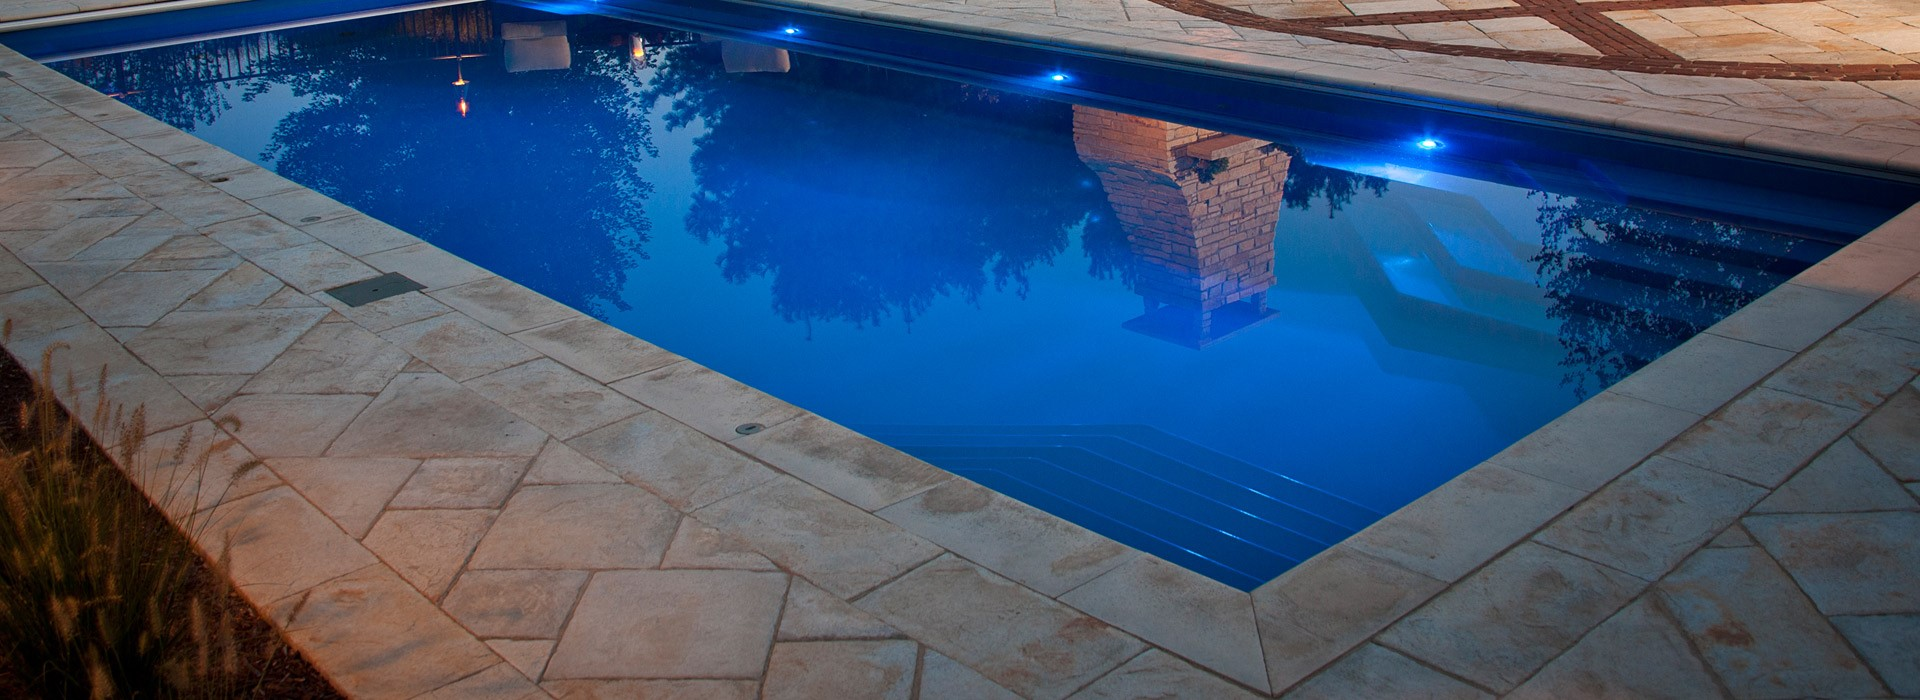 Best fiberglass swimming pools for Fiberglass inground swimming pools